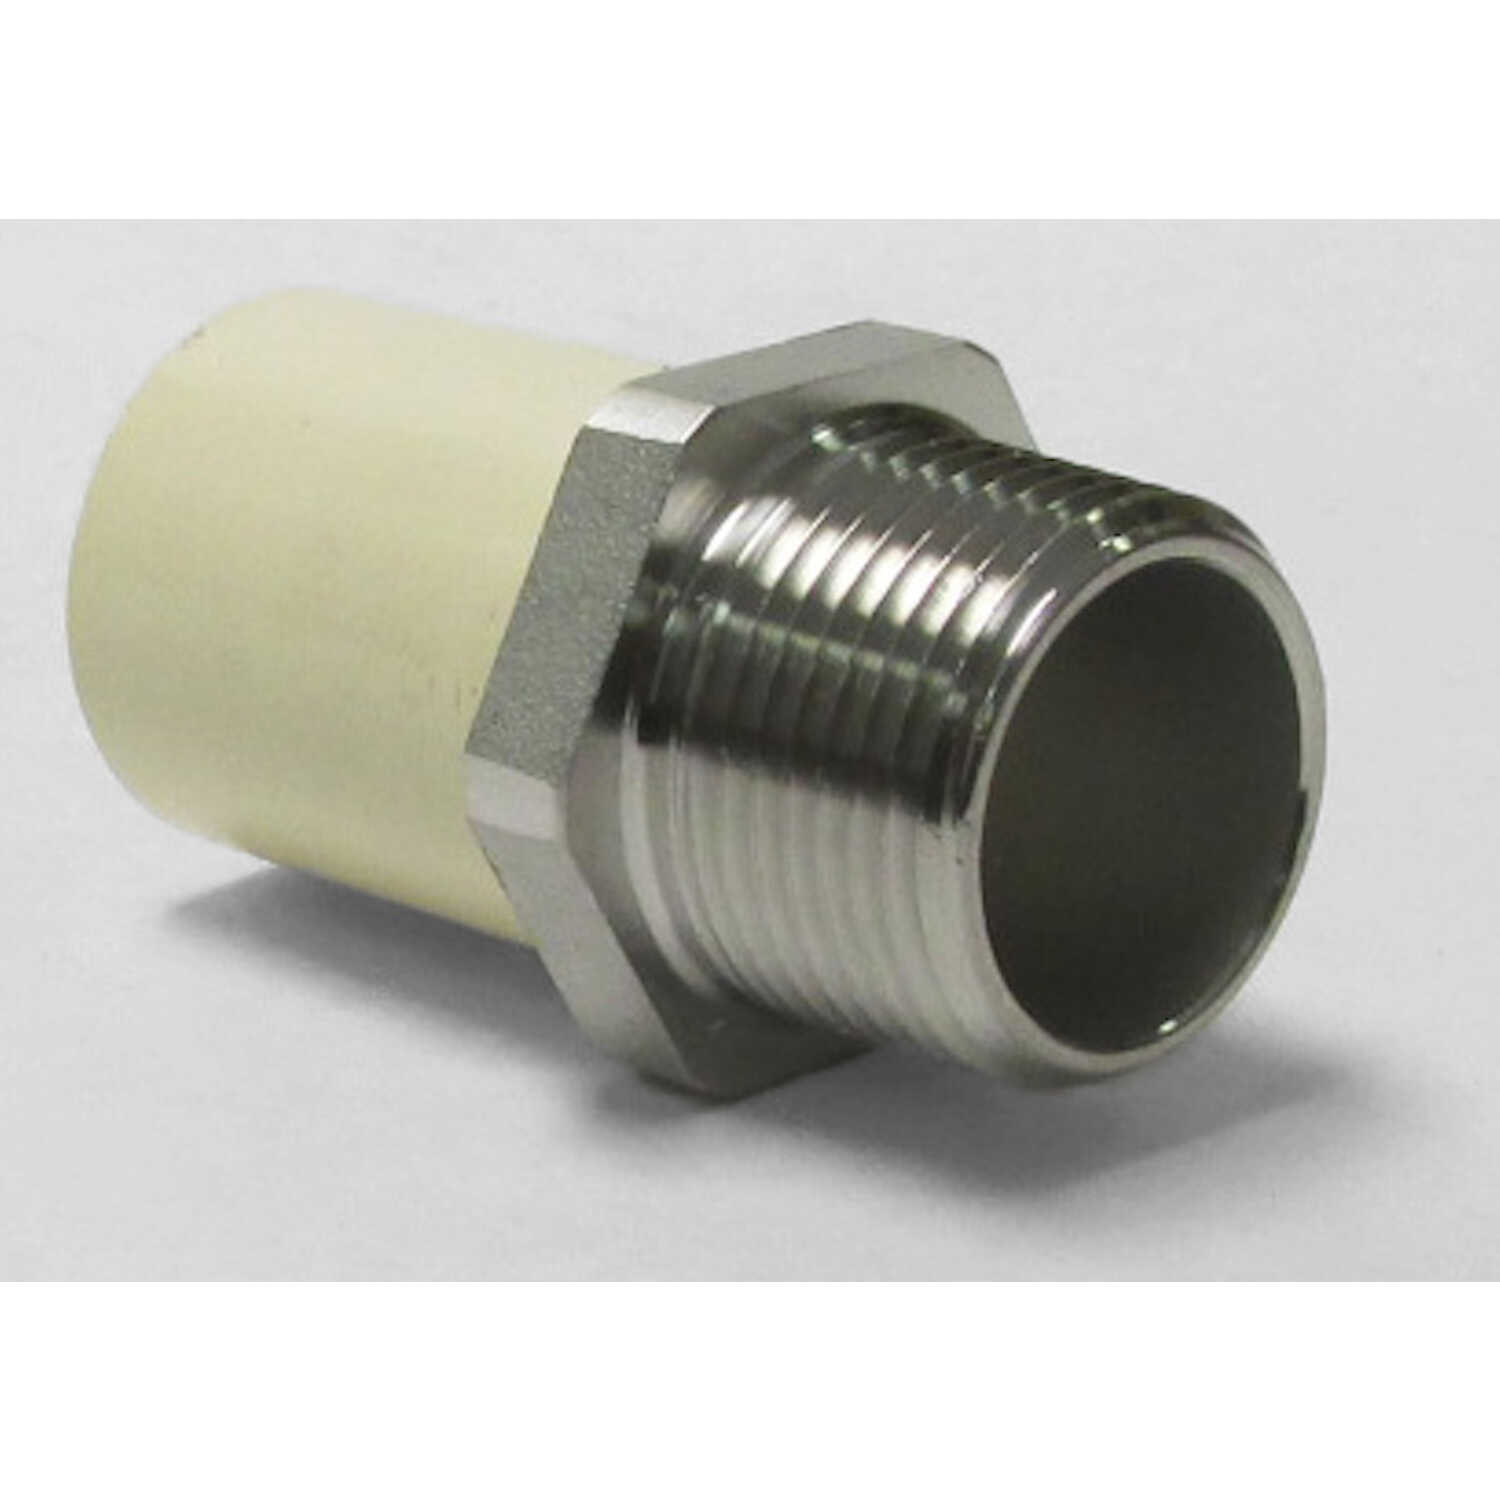 KBI  1 in. MPT   x 1 in. Dia. Slip  Transition Adapter